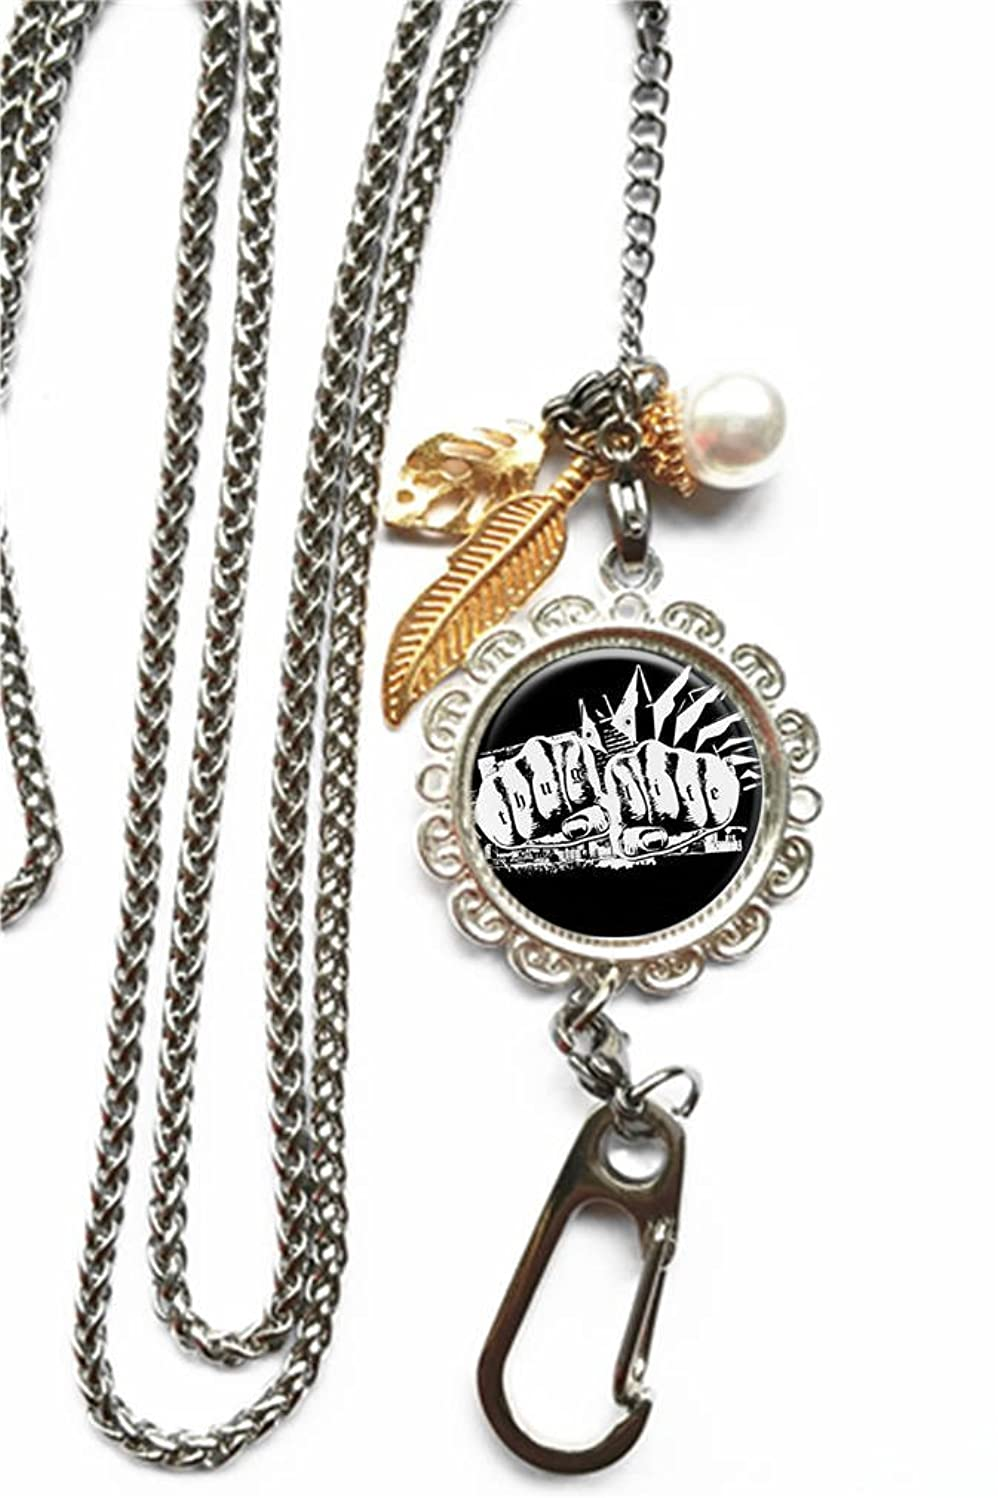 RhyNSky Thug Life Chain Lanyard Necklace Bracelet Keychain Eyeglass Holder for ID Card Name Tag Badge Holder with Clasp, C1480